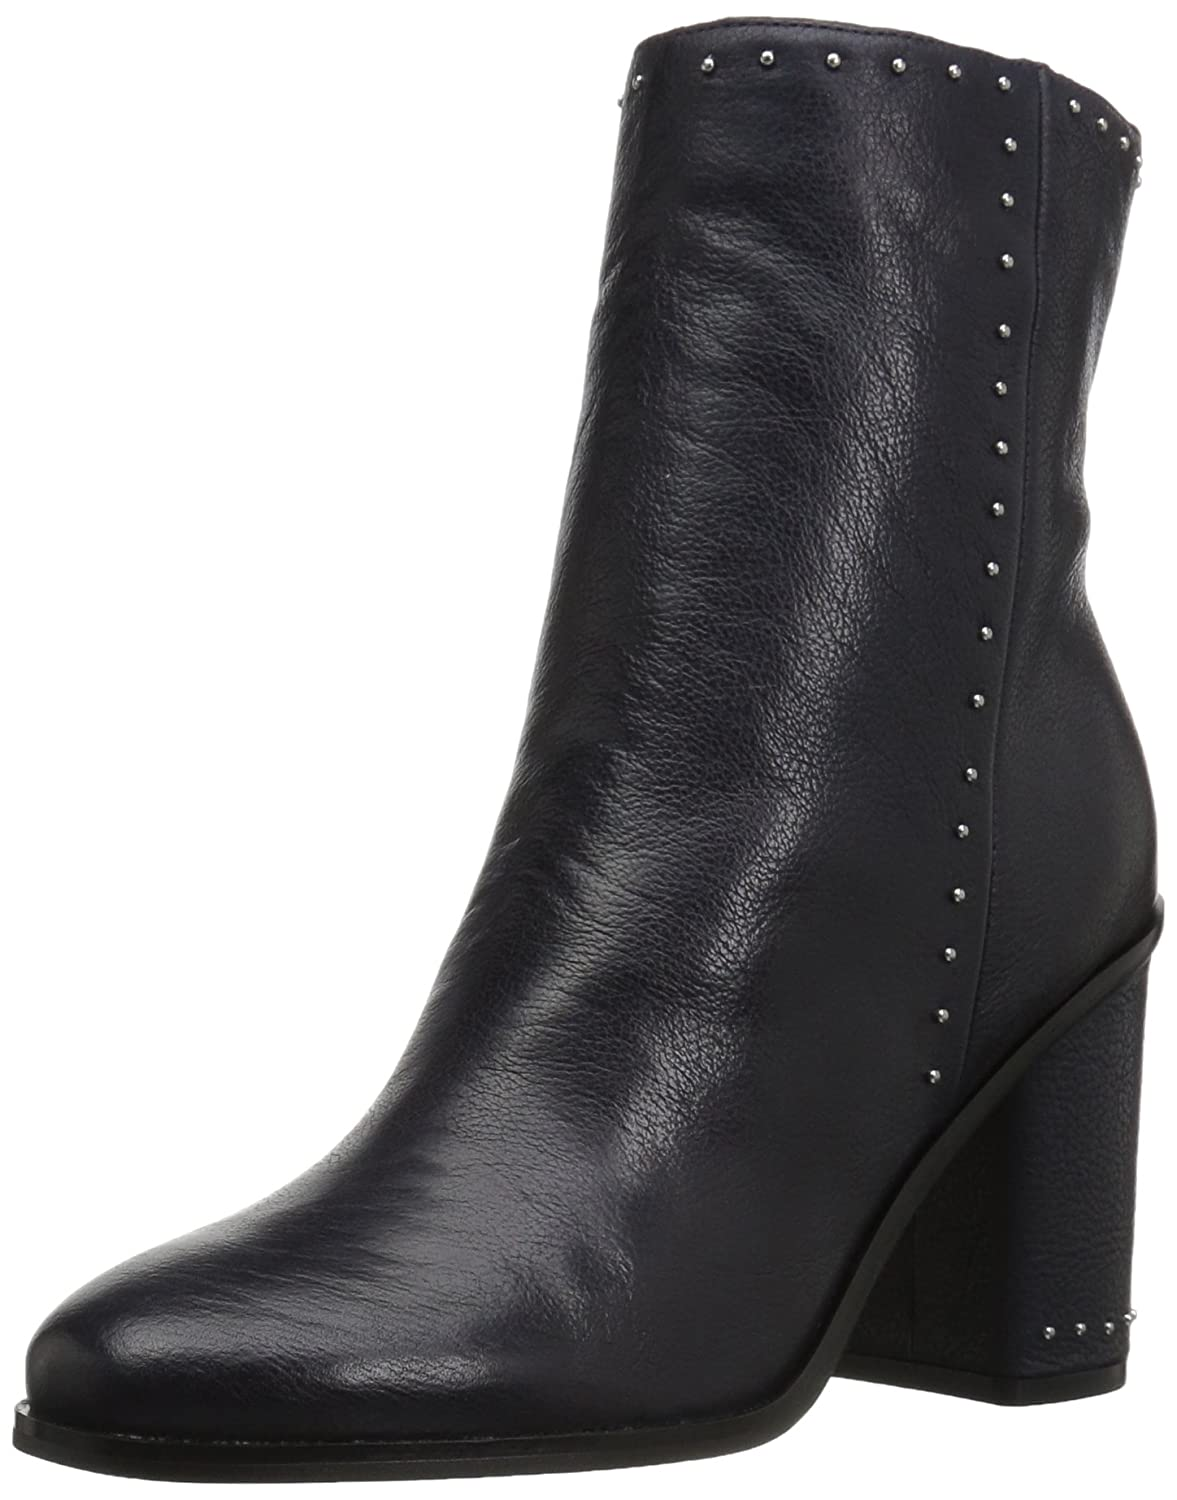 Marc Fisher Women's Piazza Ankle Boot B071HTG84V 7.5 B(M) US|Navy